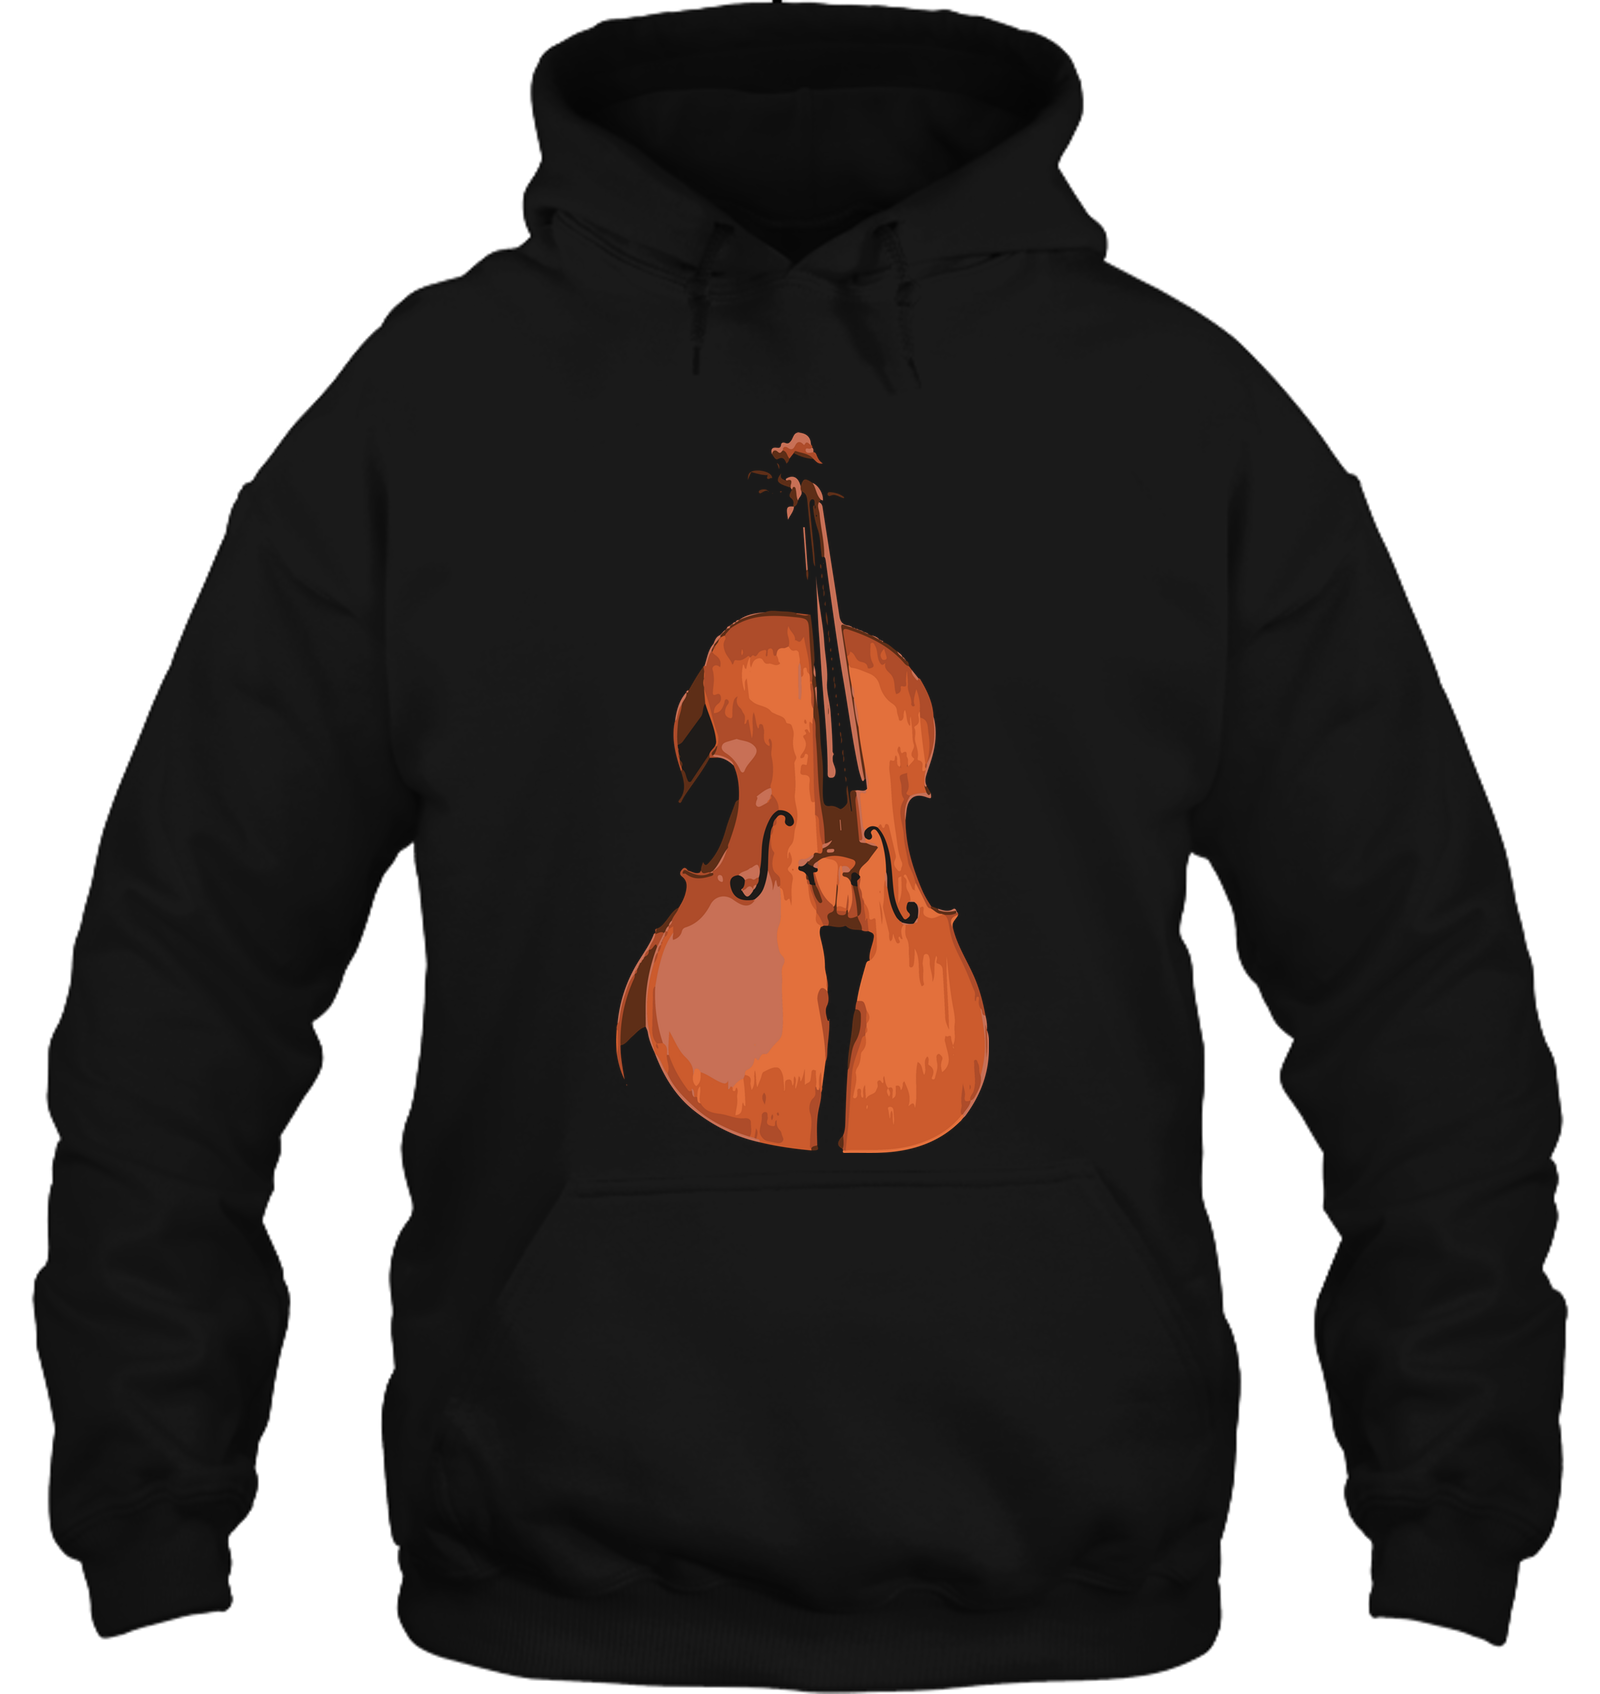 The Cello - Gildan Adult Heavy Blend™ Hoodie